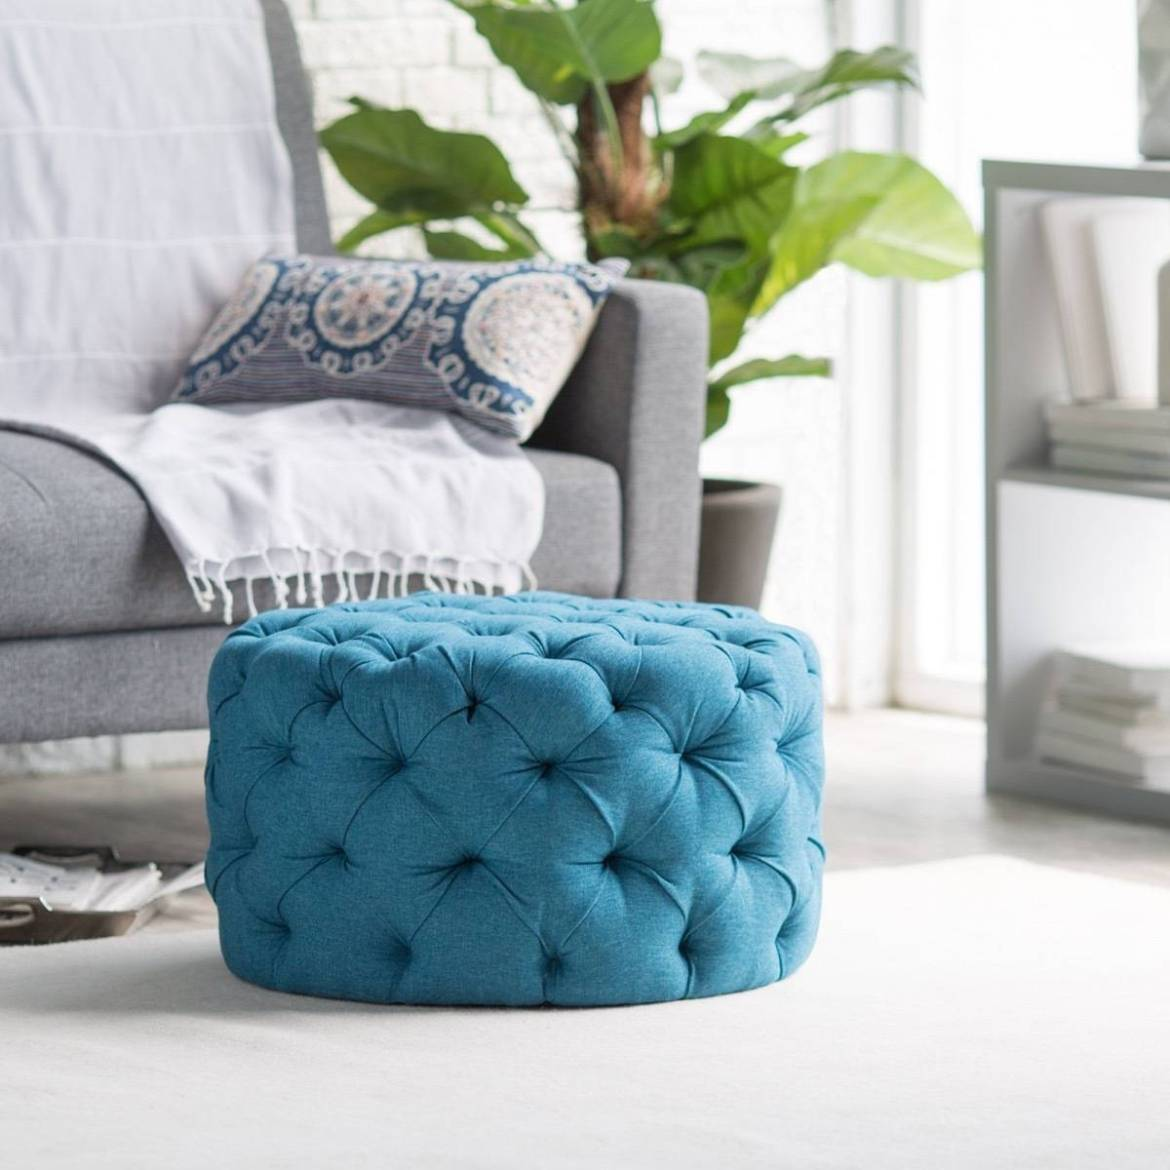 Allover tufted ottoman from Hayneedle